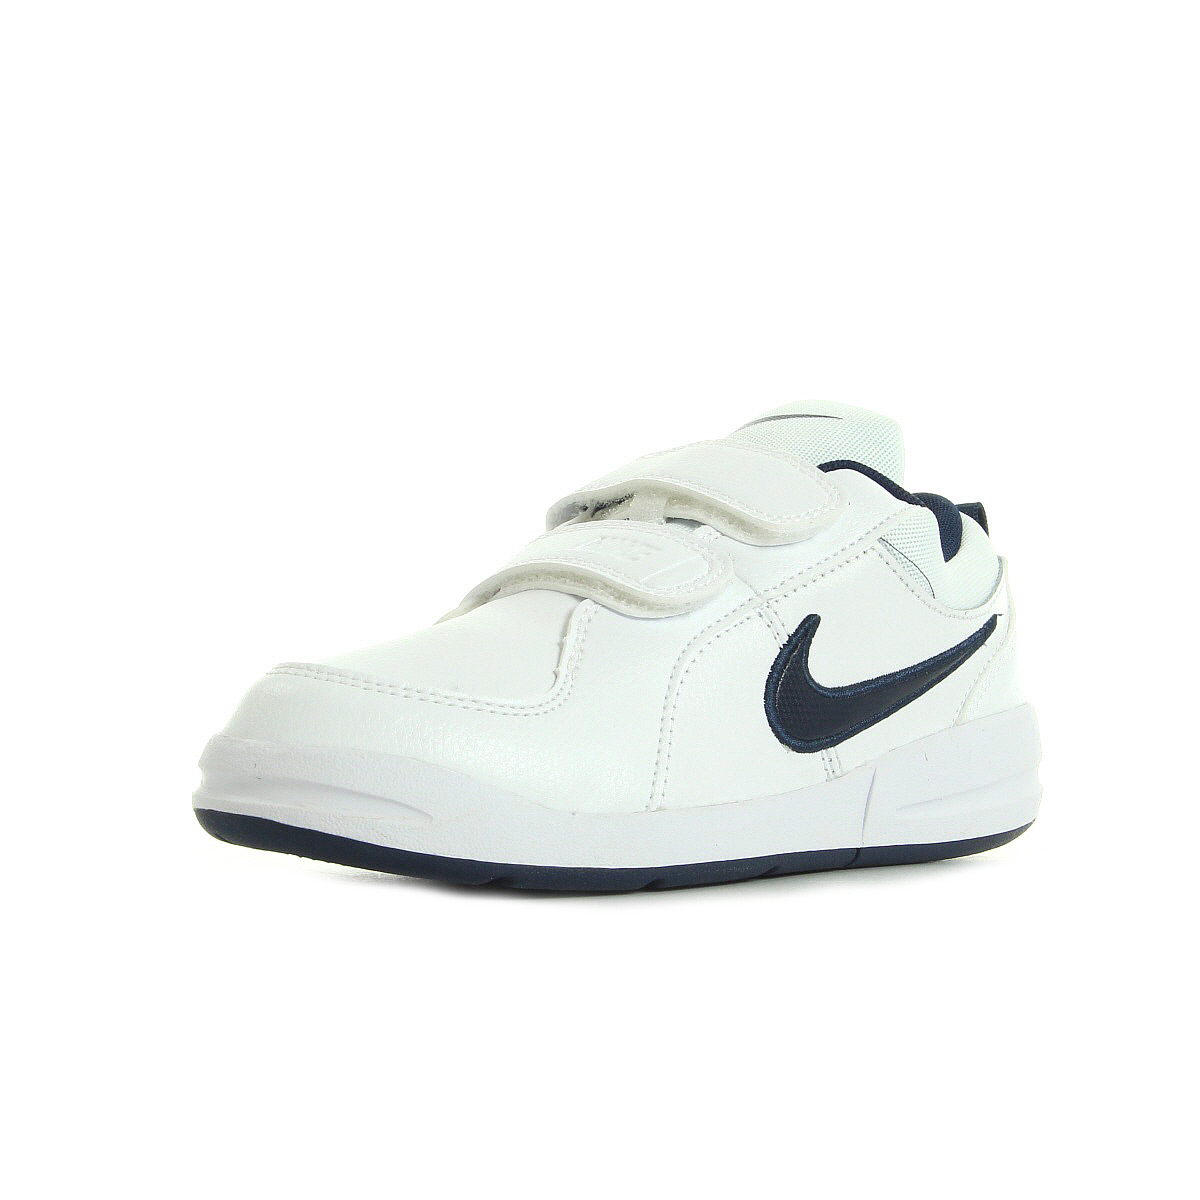 chaussures baskets mode nike garcon pico 4 psv taille blanc blanche cuir. Black Bedroom Furniture Sets. Home Design Ideas